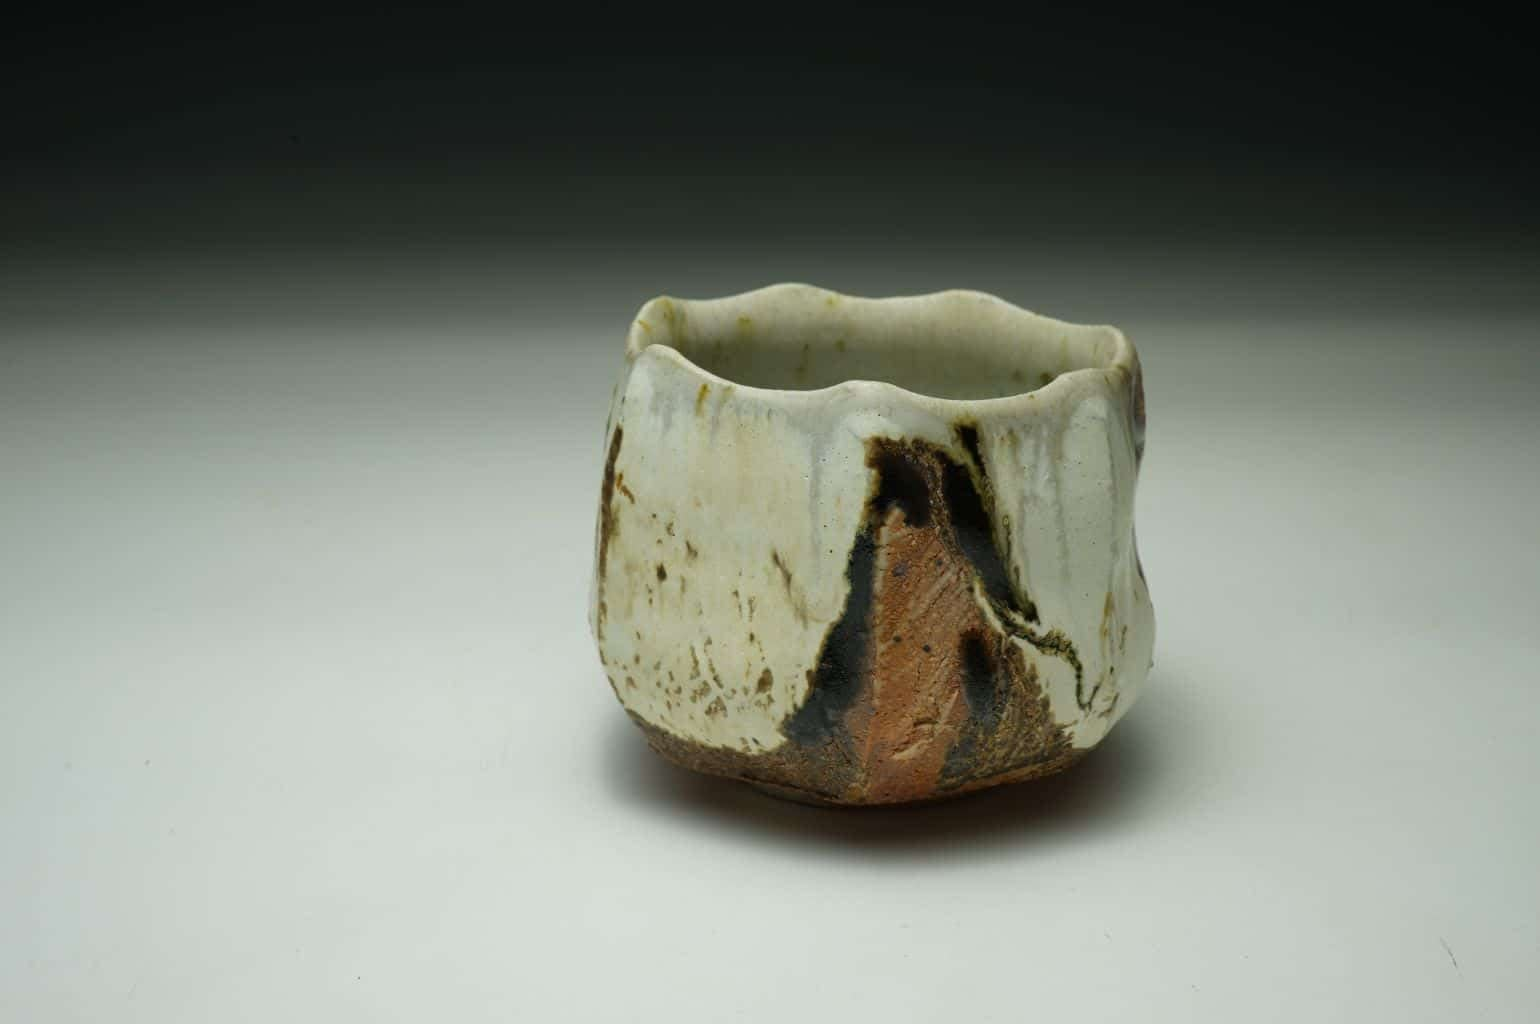 Wood-fired matcha tea bowl thrown and cut sided. One-off piece. Natural Celedon glaze inside.